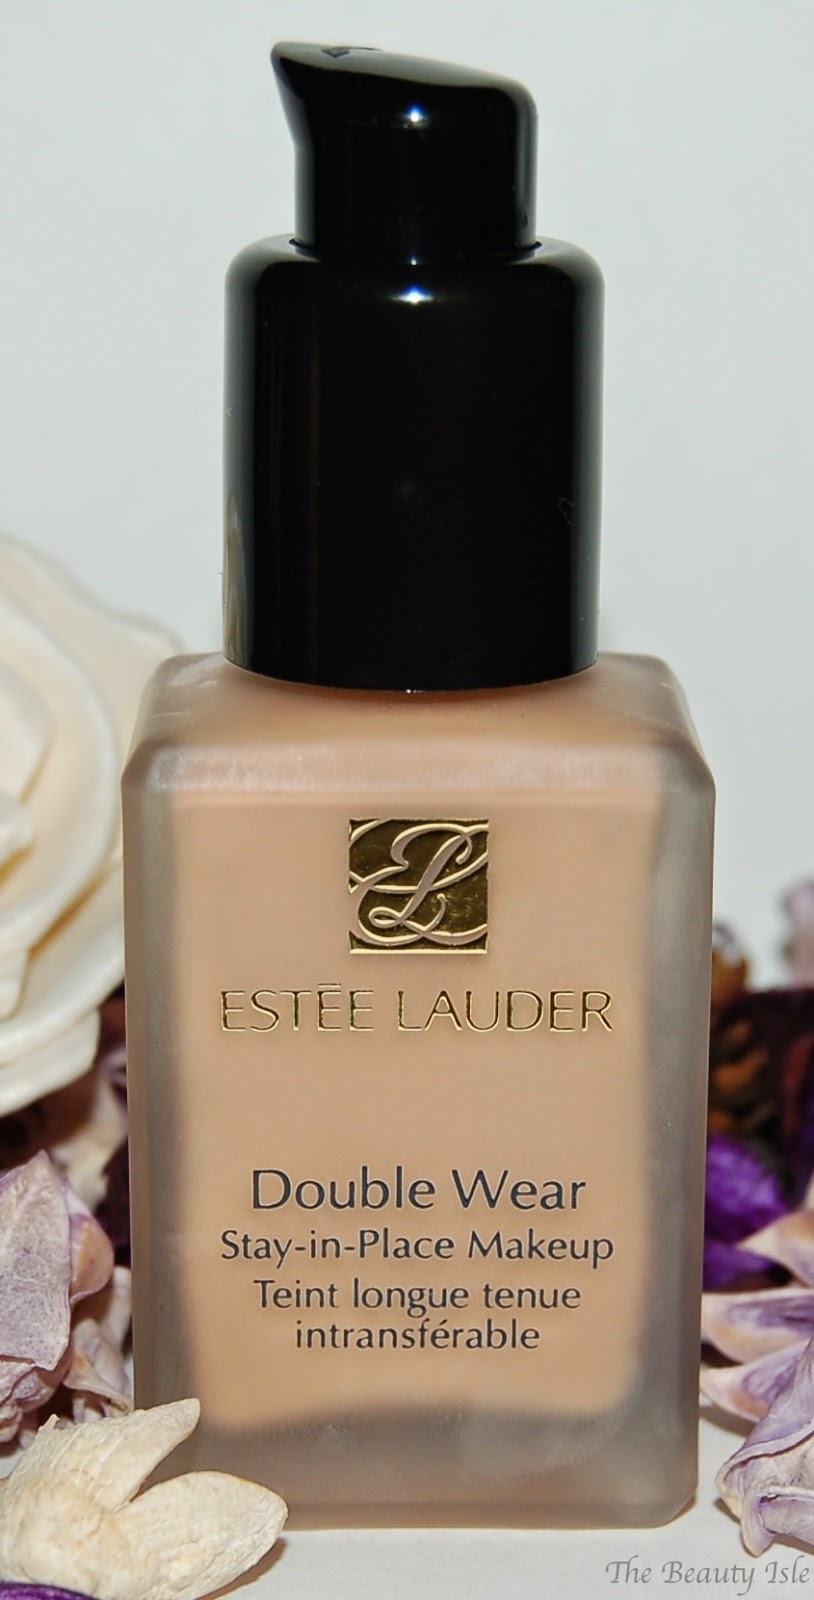 ReviewThe Estee Foundation Lauder Beauty Isle Wear Double Pym8vn0wNO